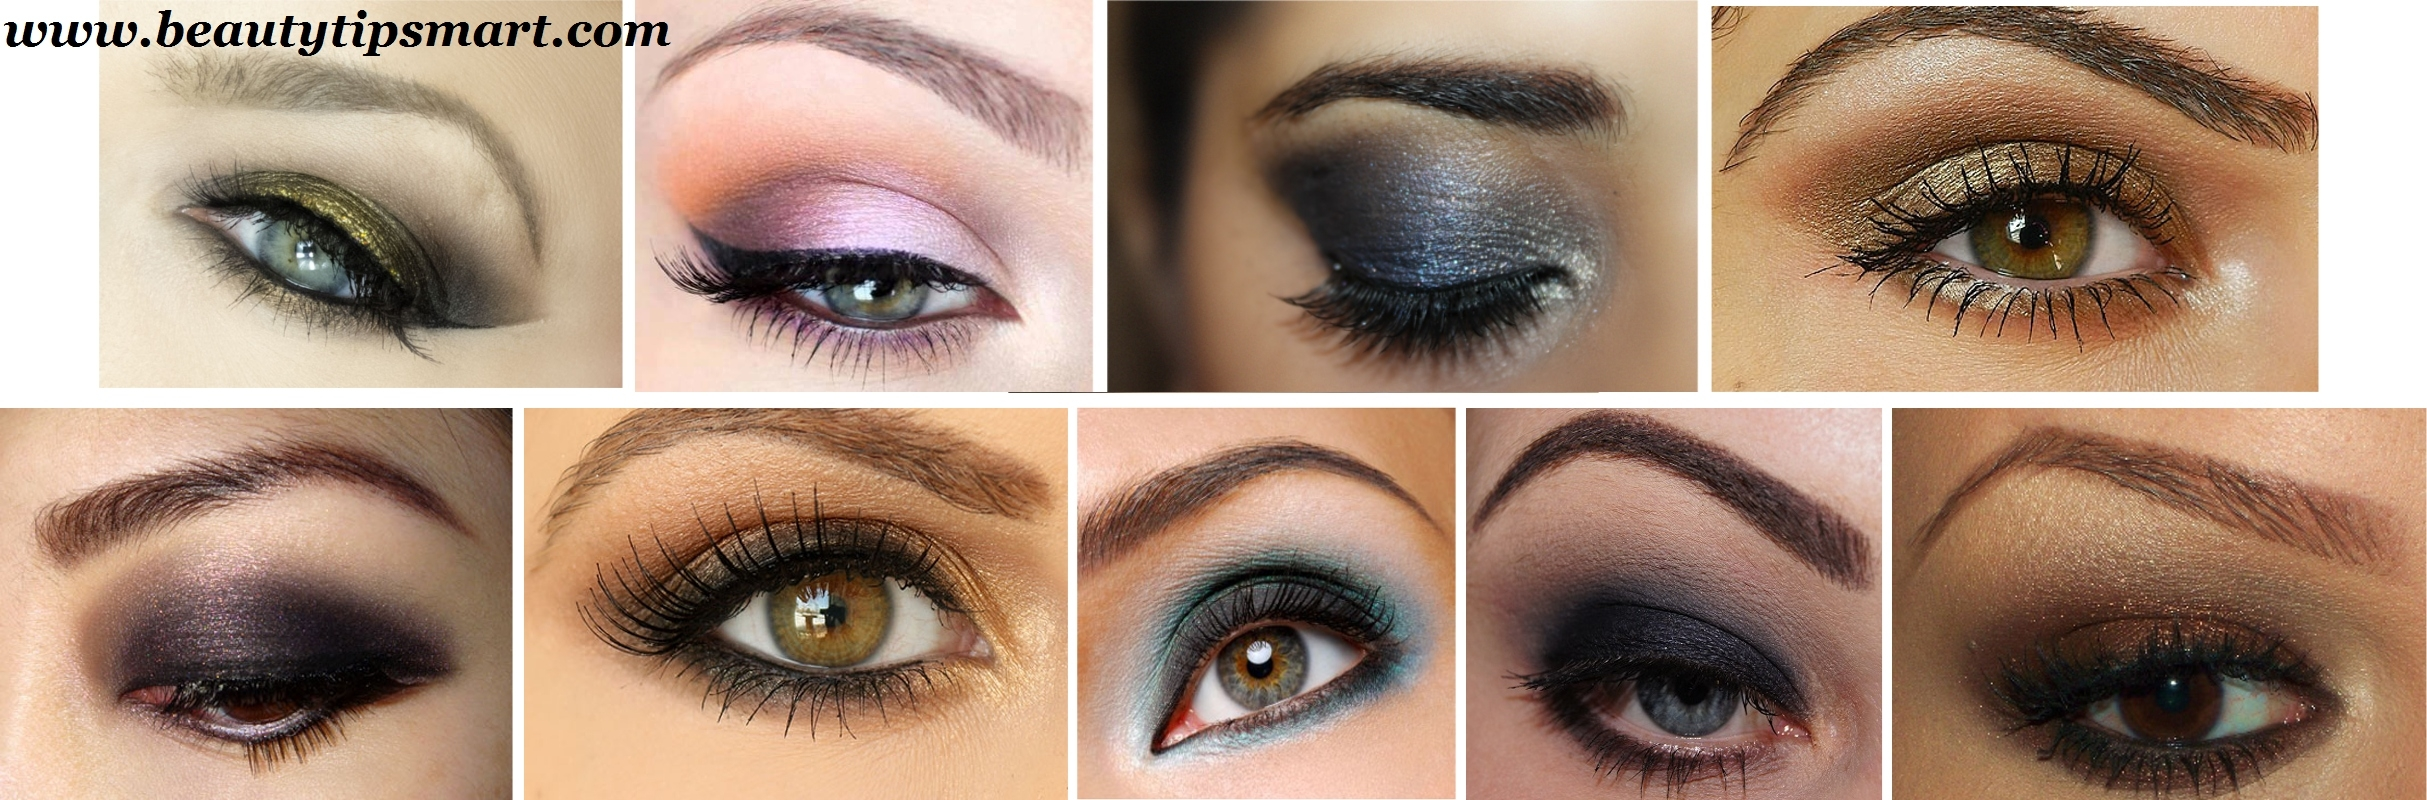 Impressive Best Eyeshadow Color For Green Eyes #4 Best Color for Good Eyeshadow Colors For Hazel Green Eyes